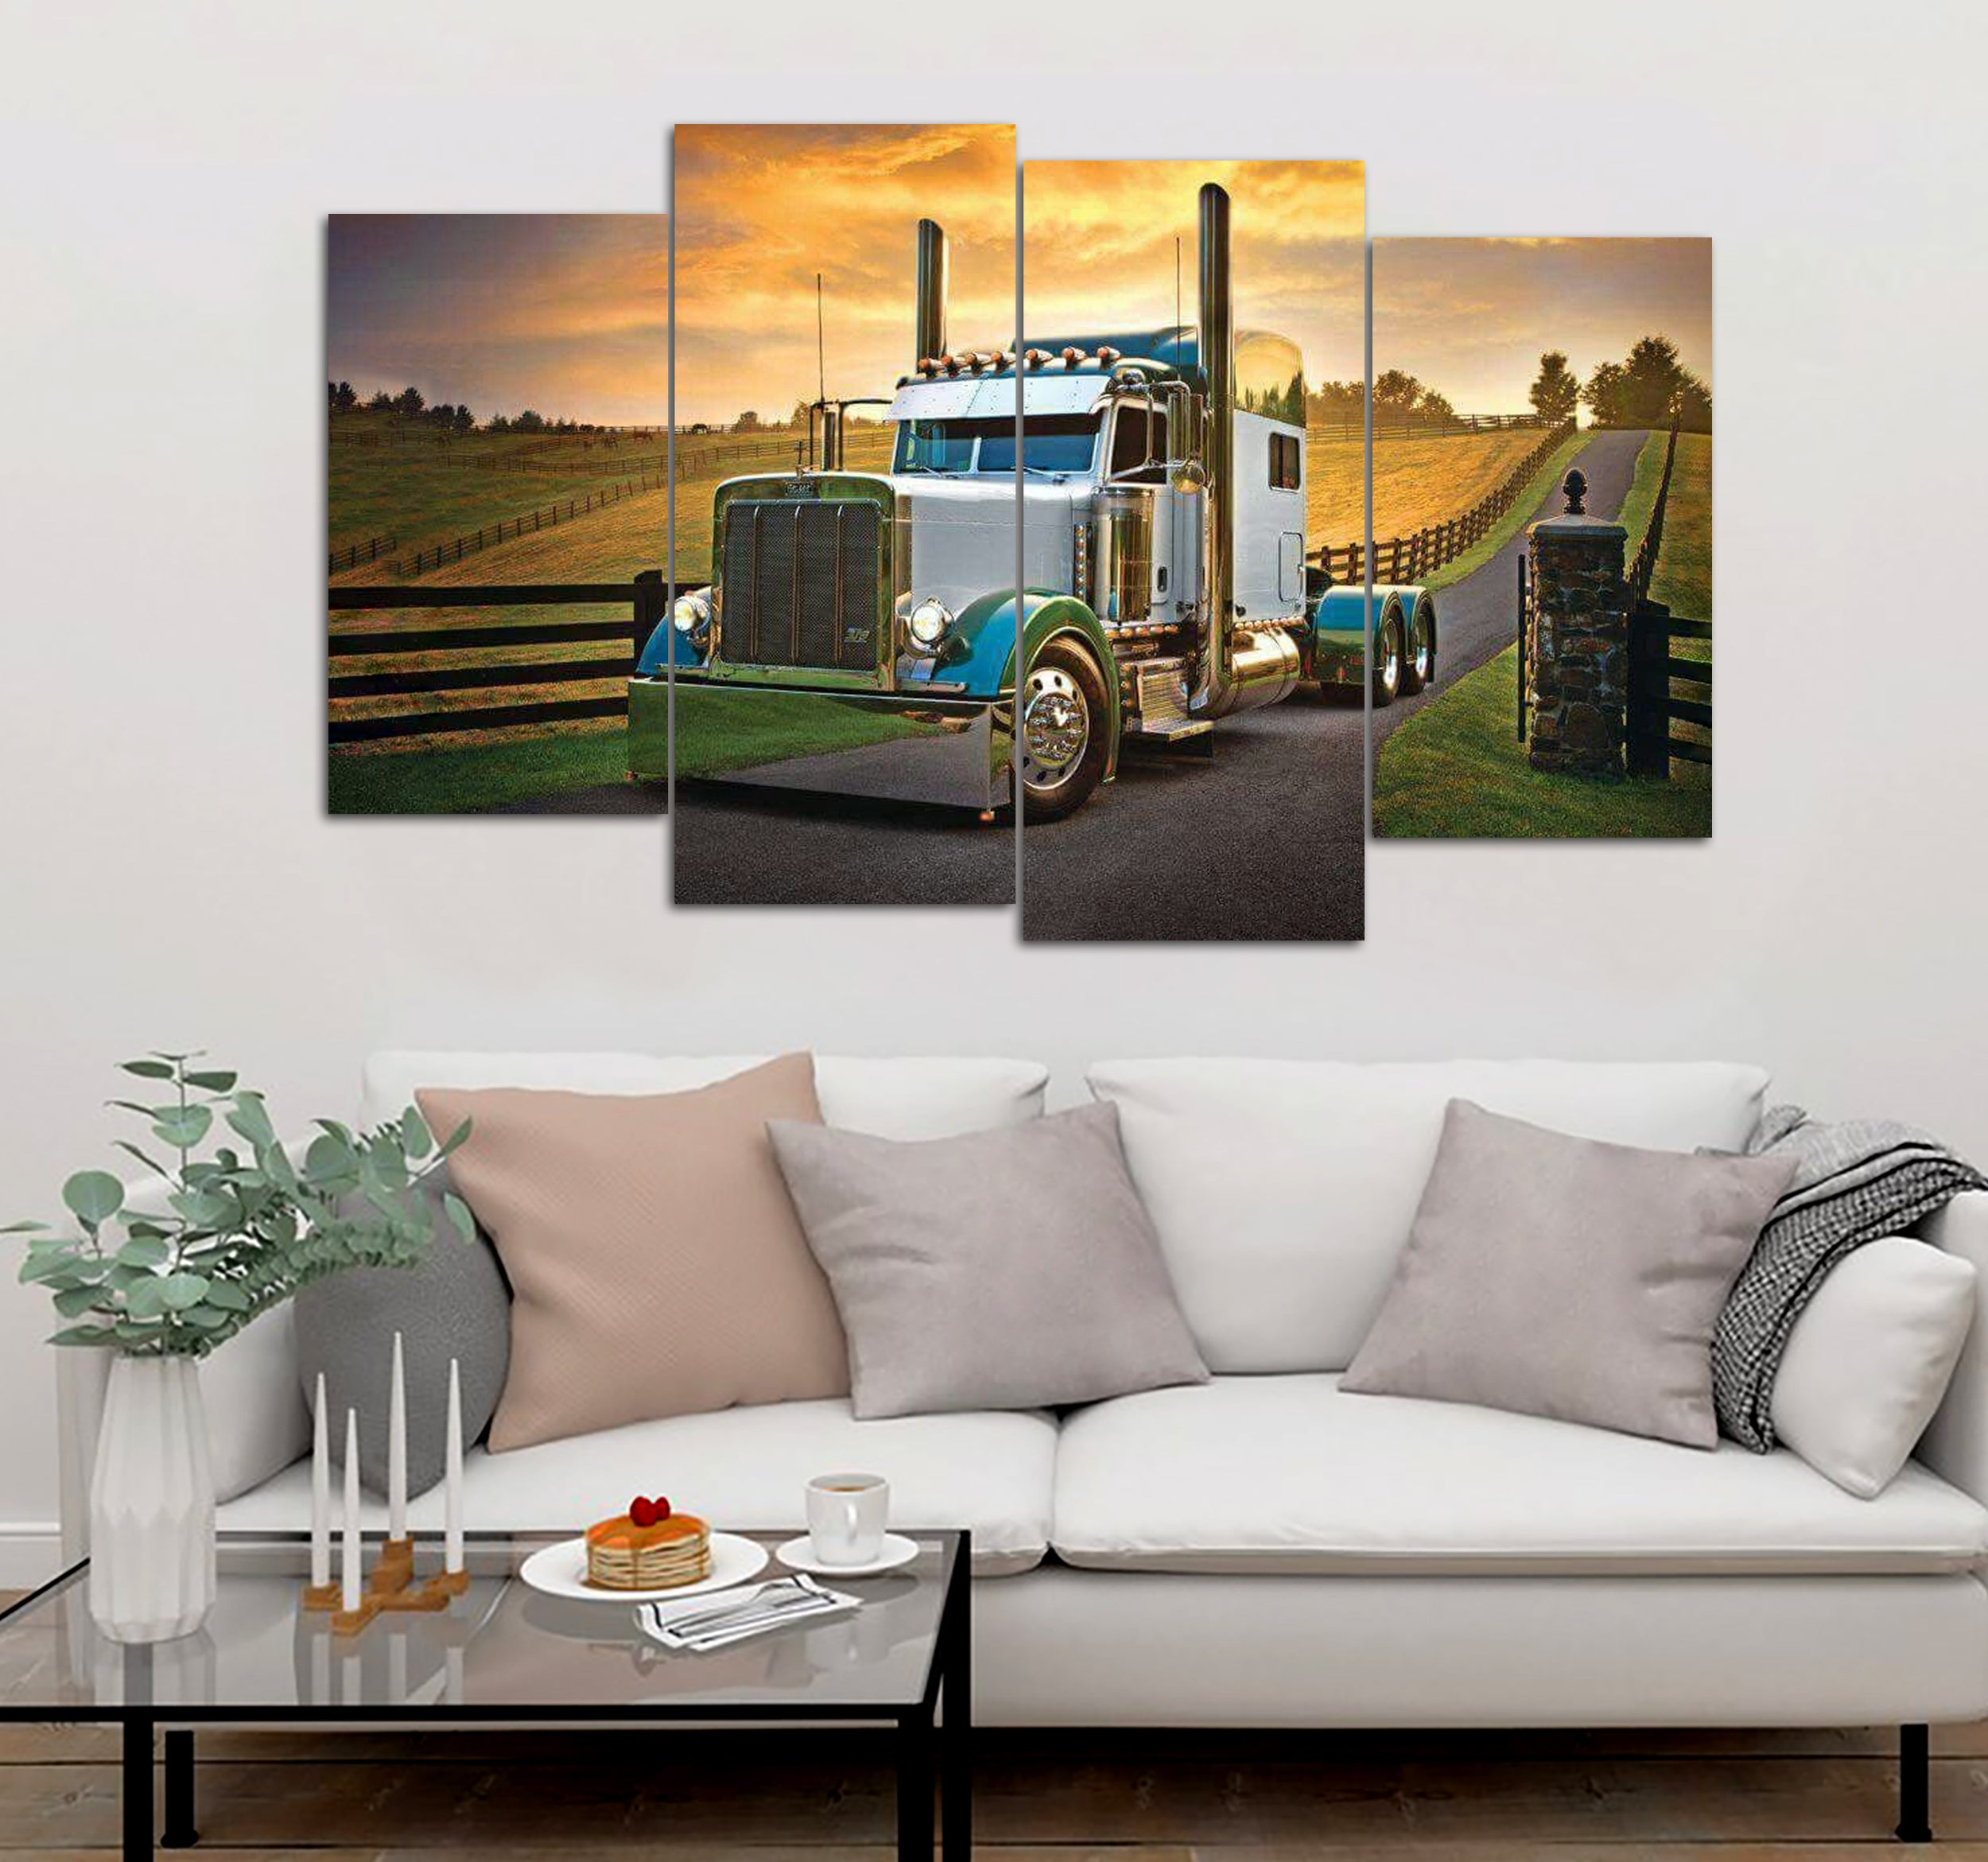 4 Piece Truck And Field Printed Canvas Wall Art